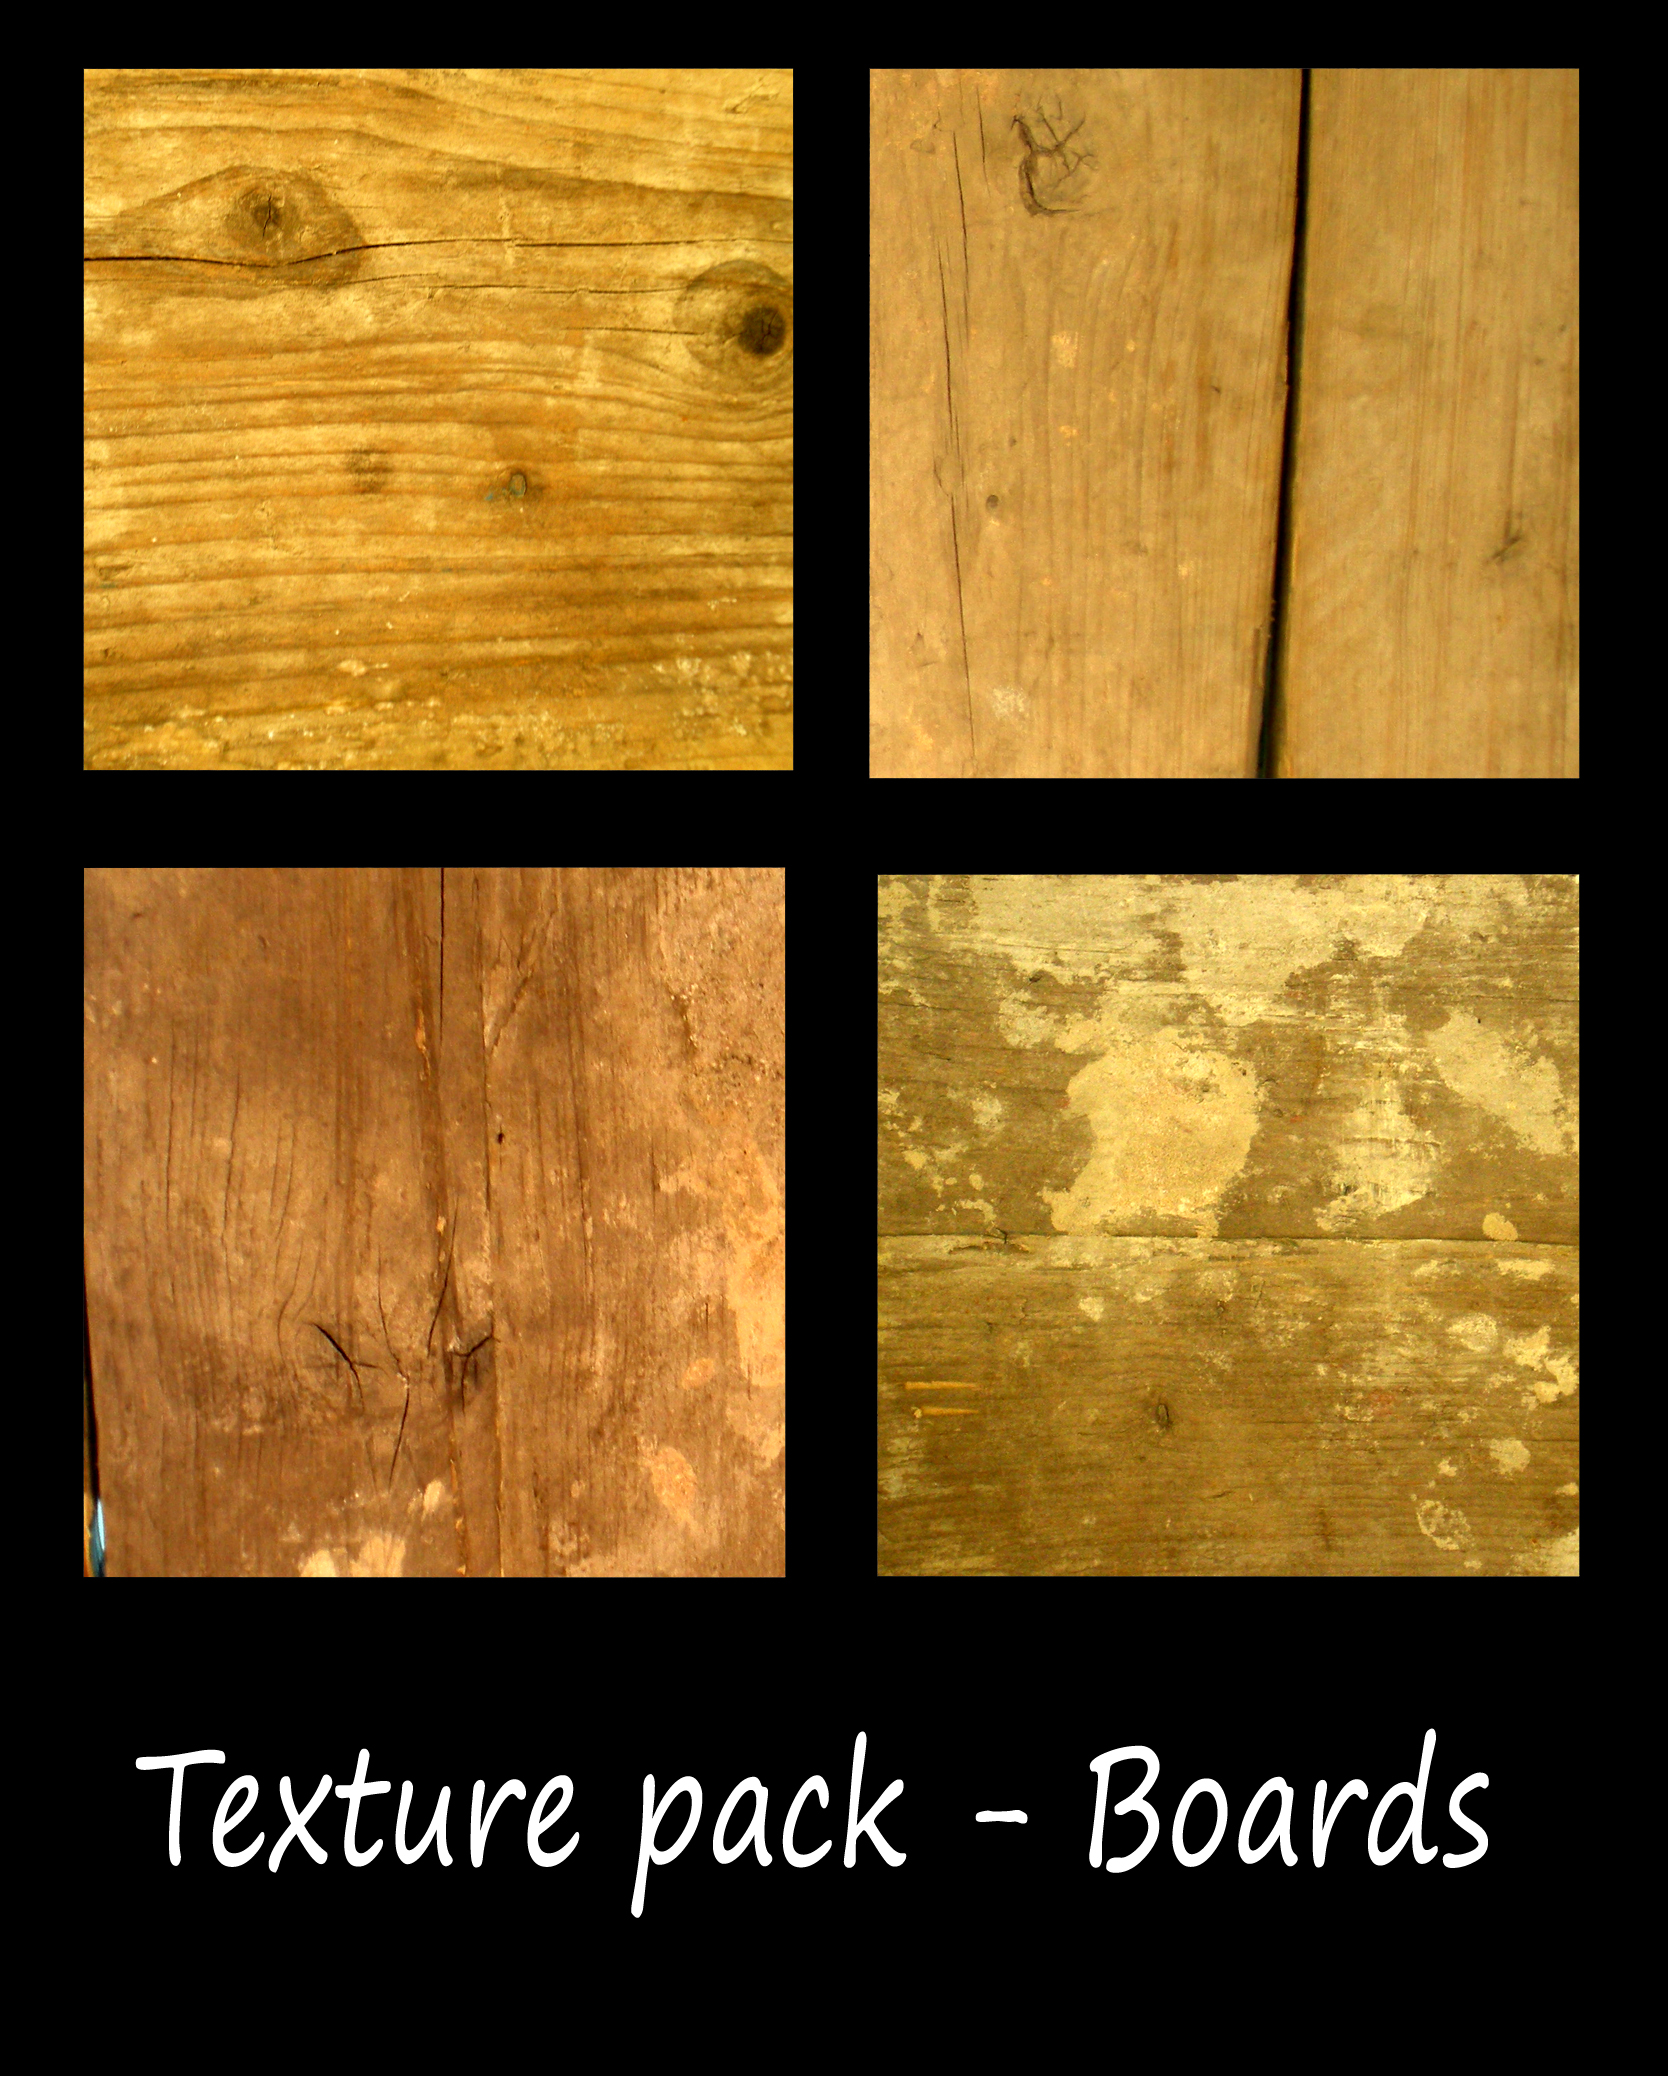 Texture Pack - Boards